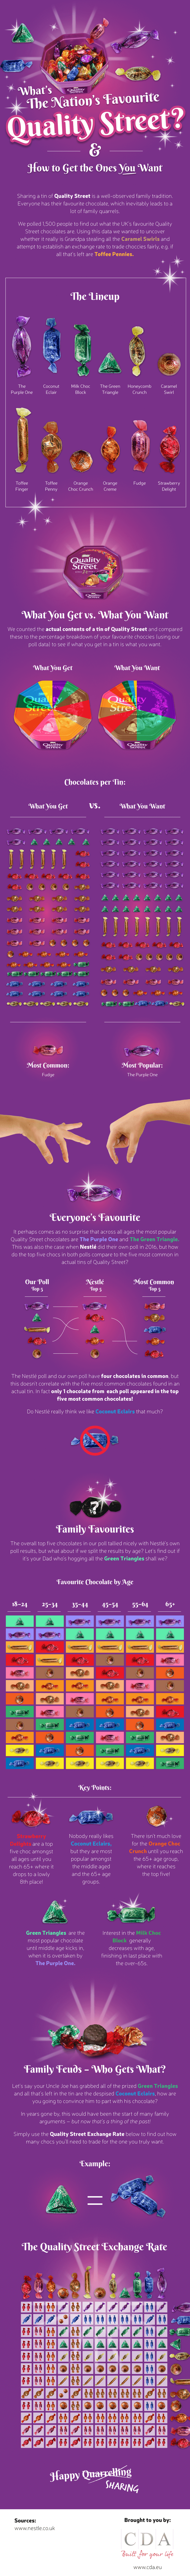 What's the Nation's Favourite Quality Street? #infographic